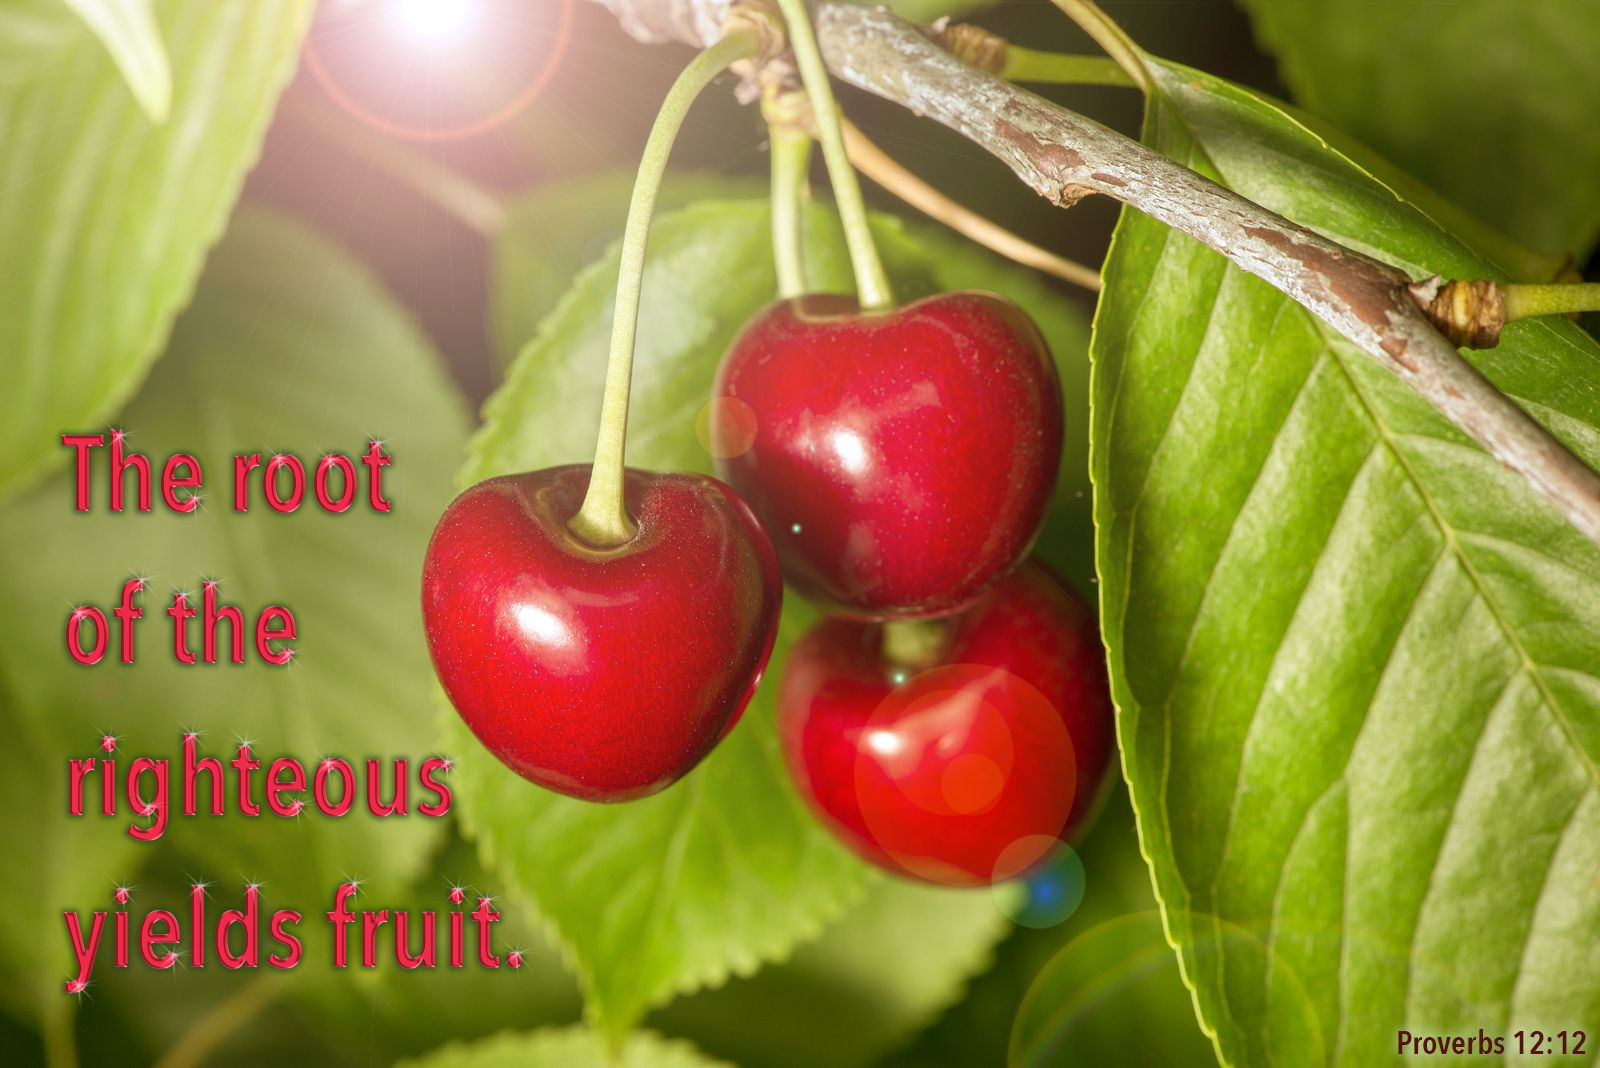 Proverbs about fruits and vegetables